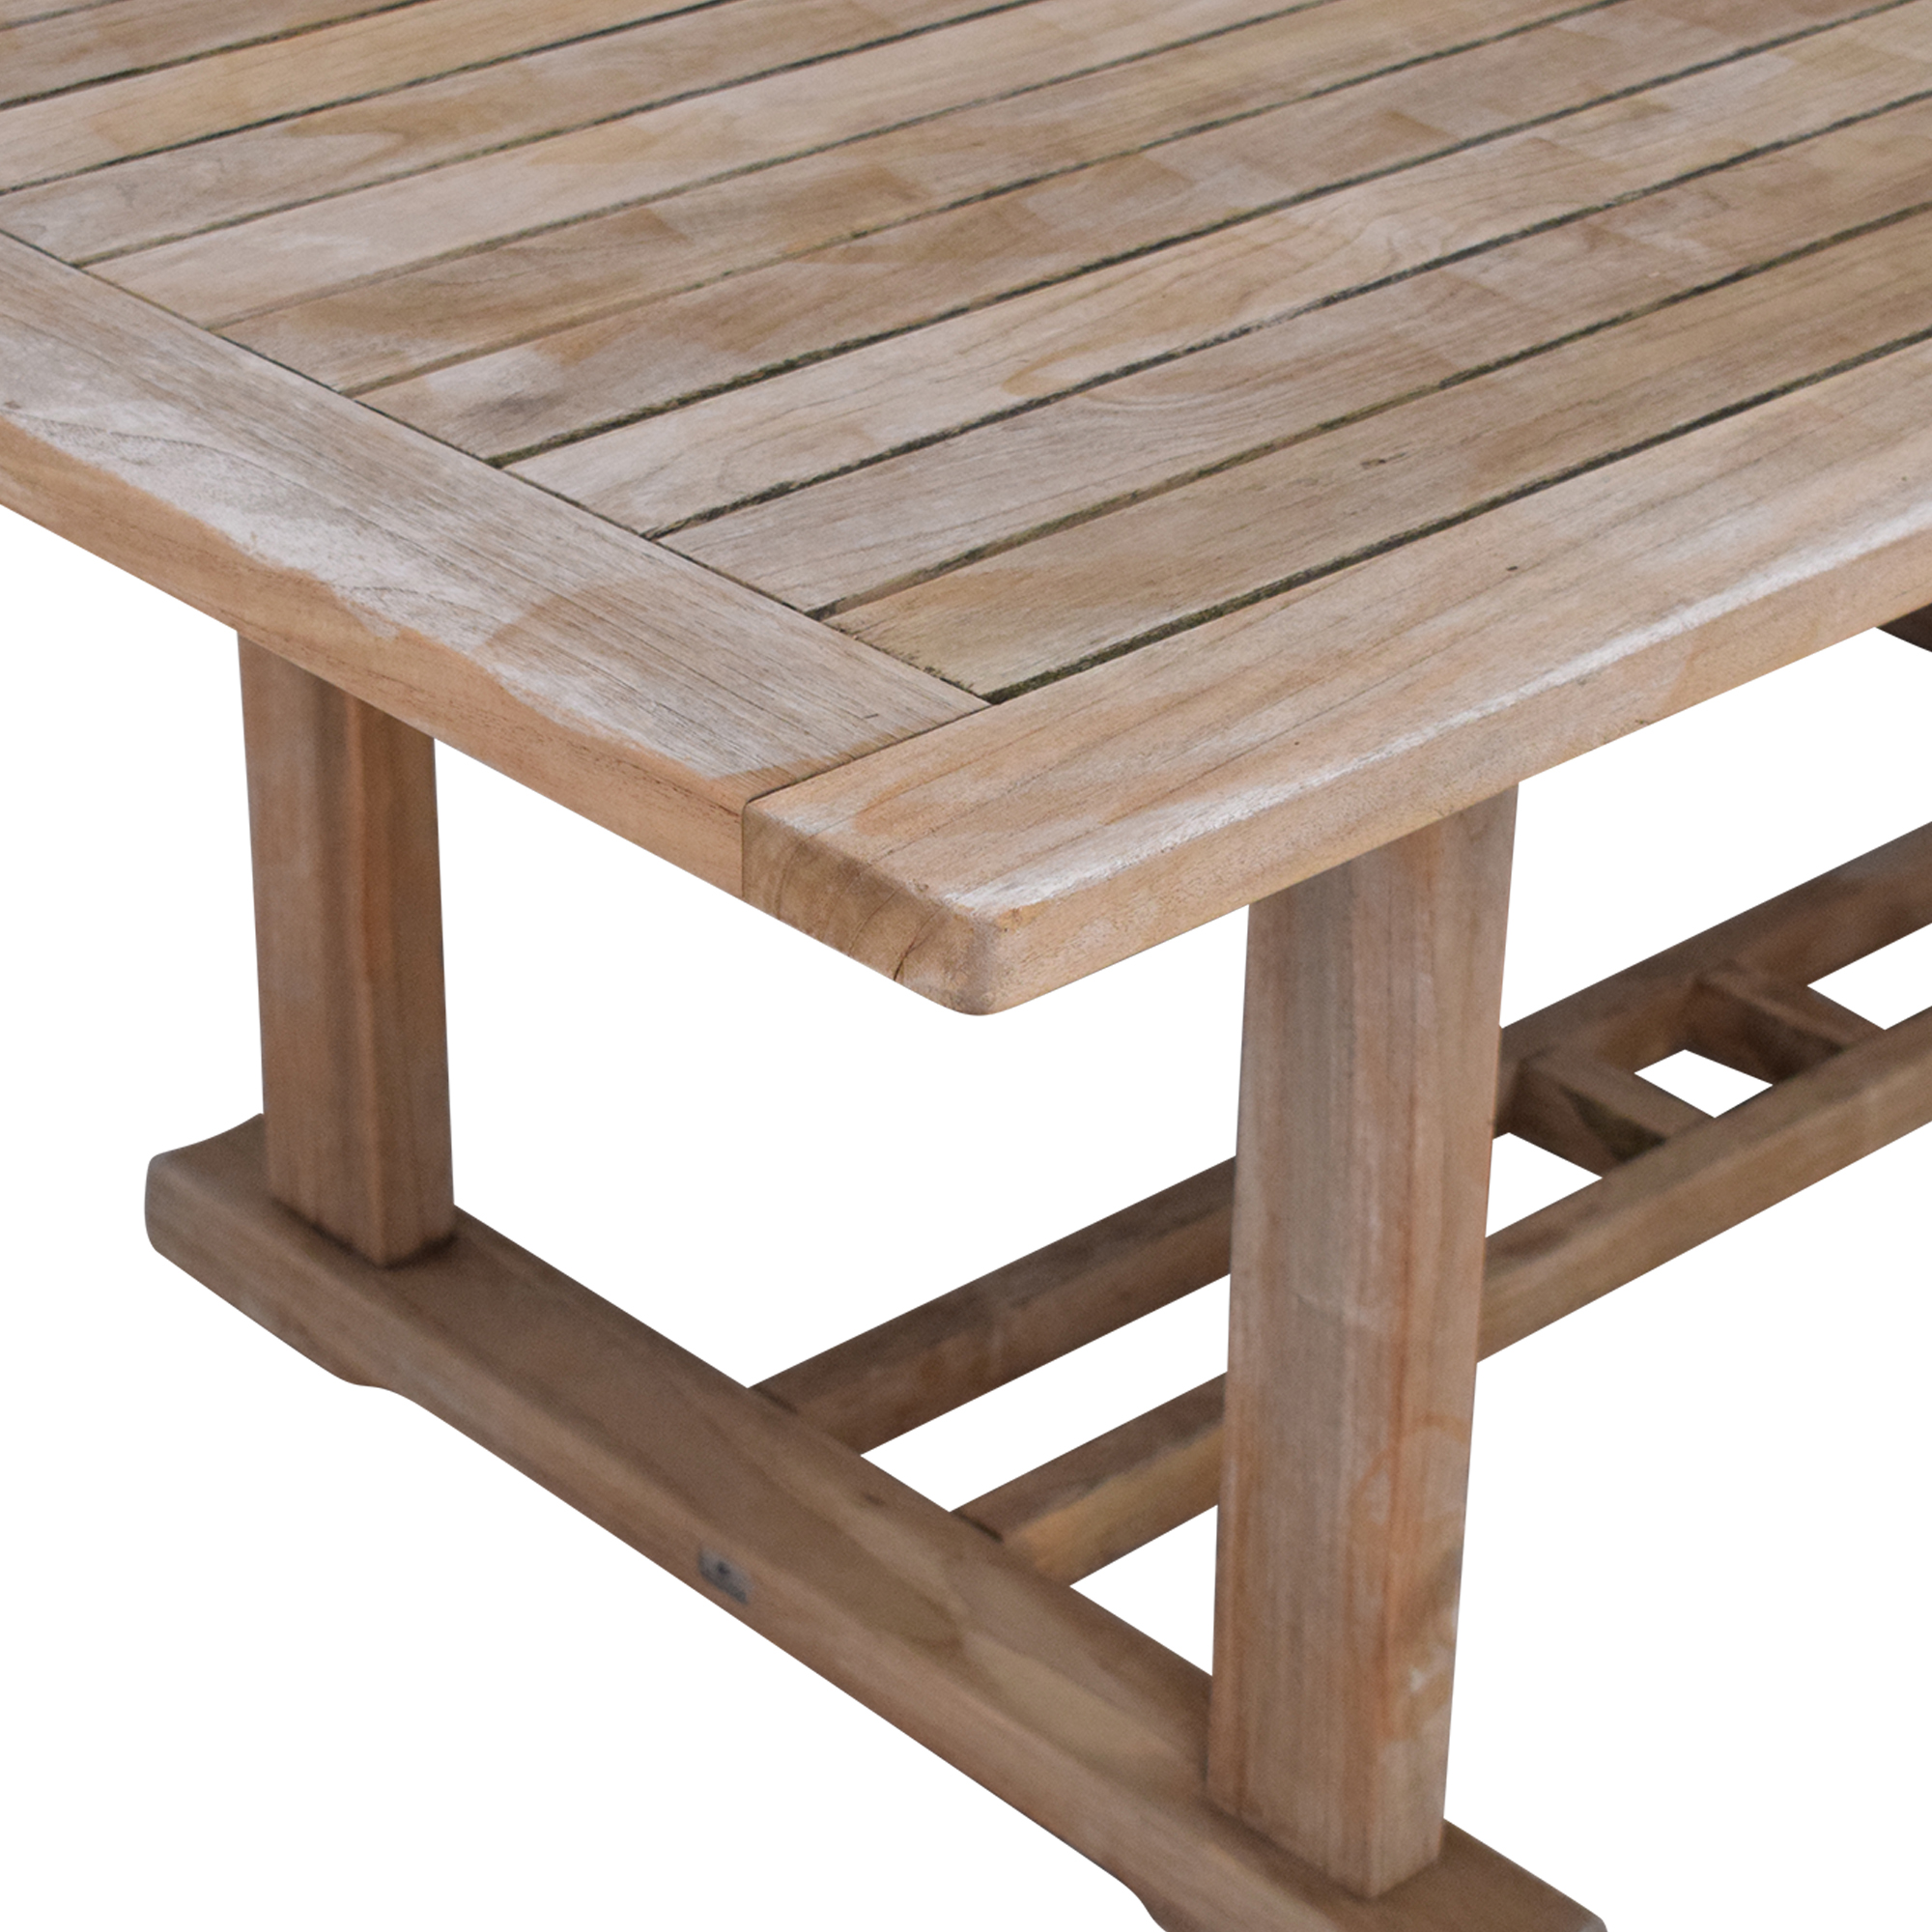 shop Gloster Gloster Rustic Dining Table online